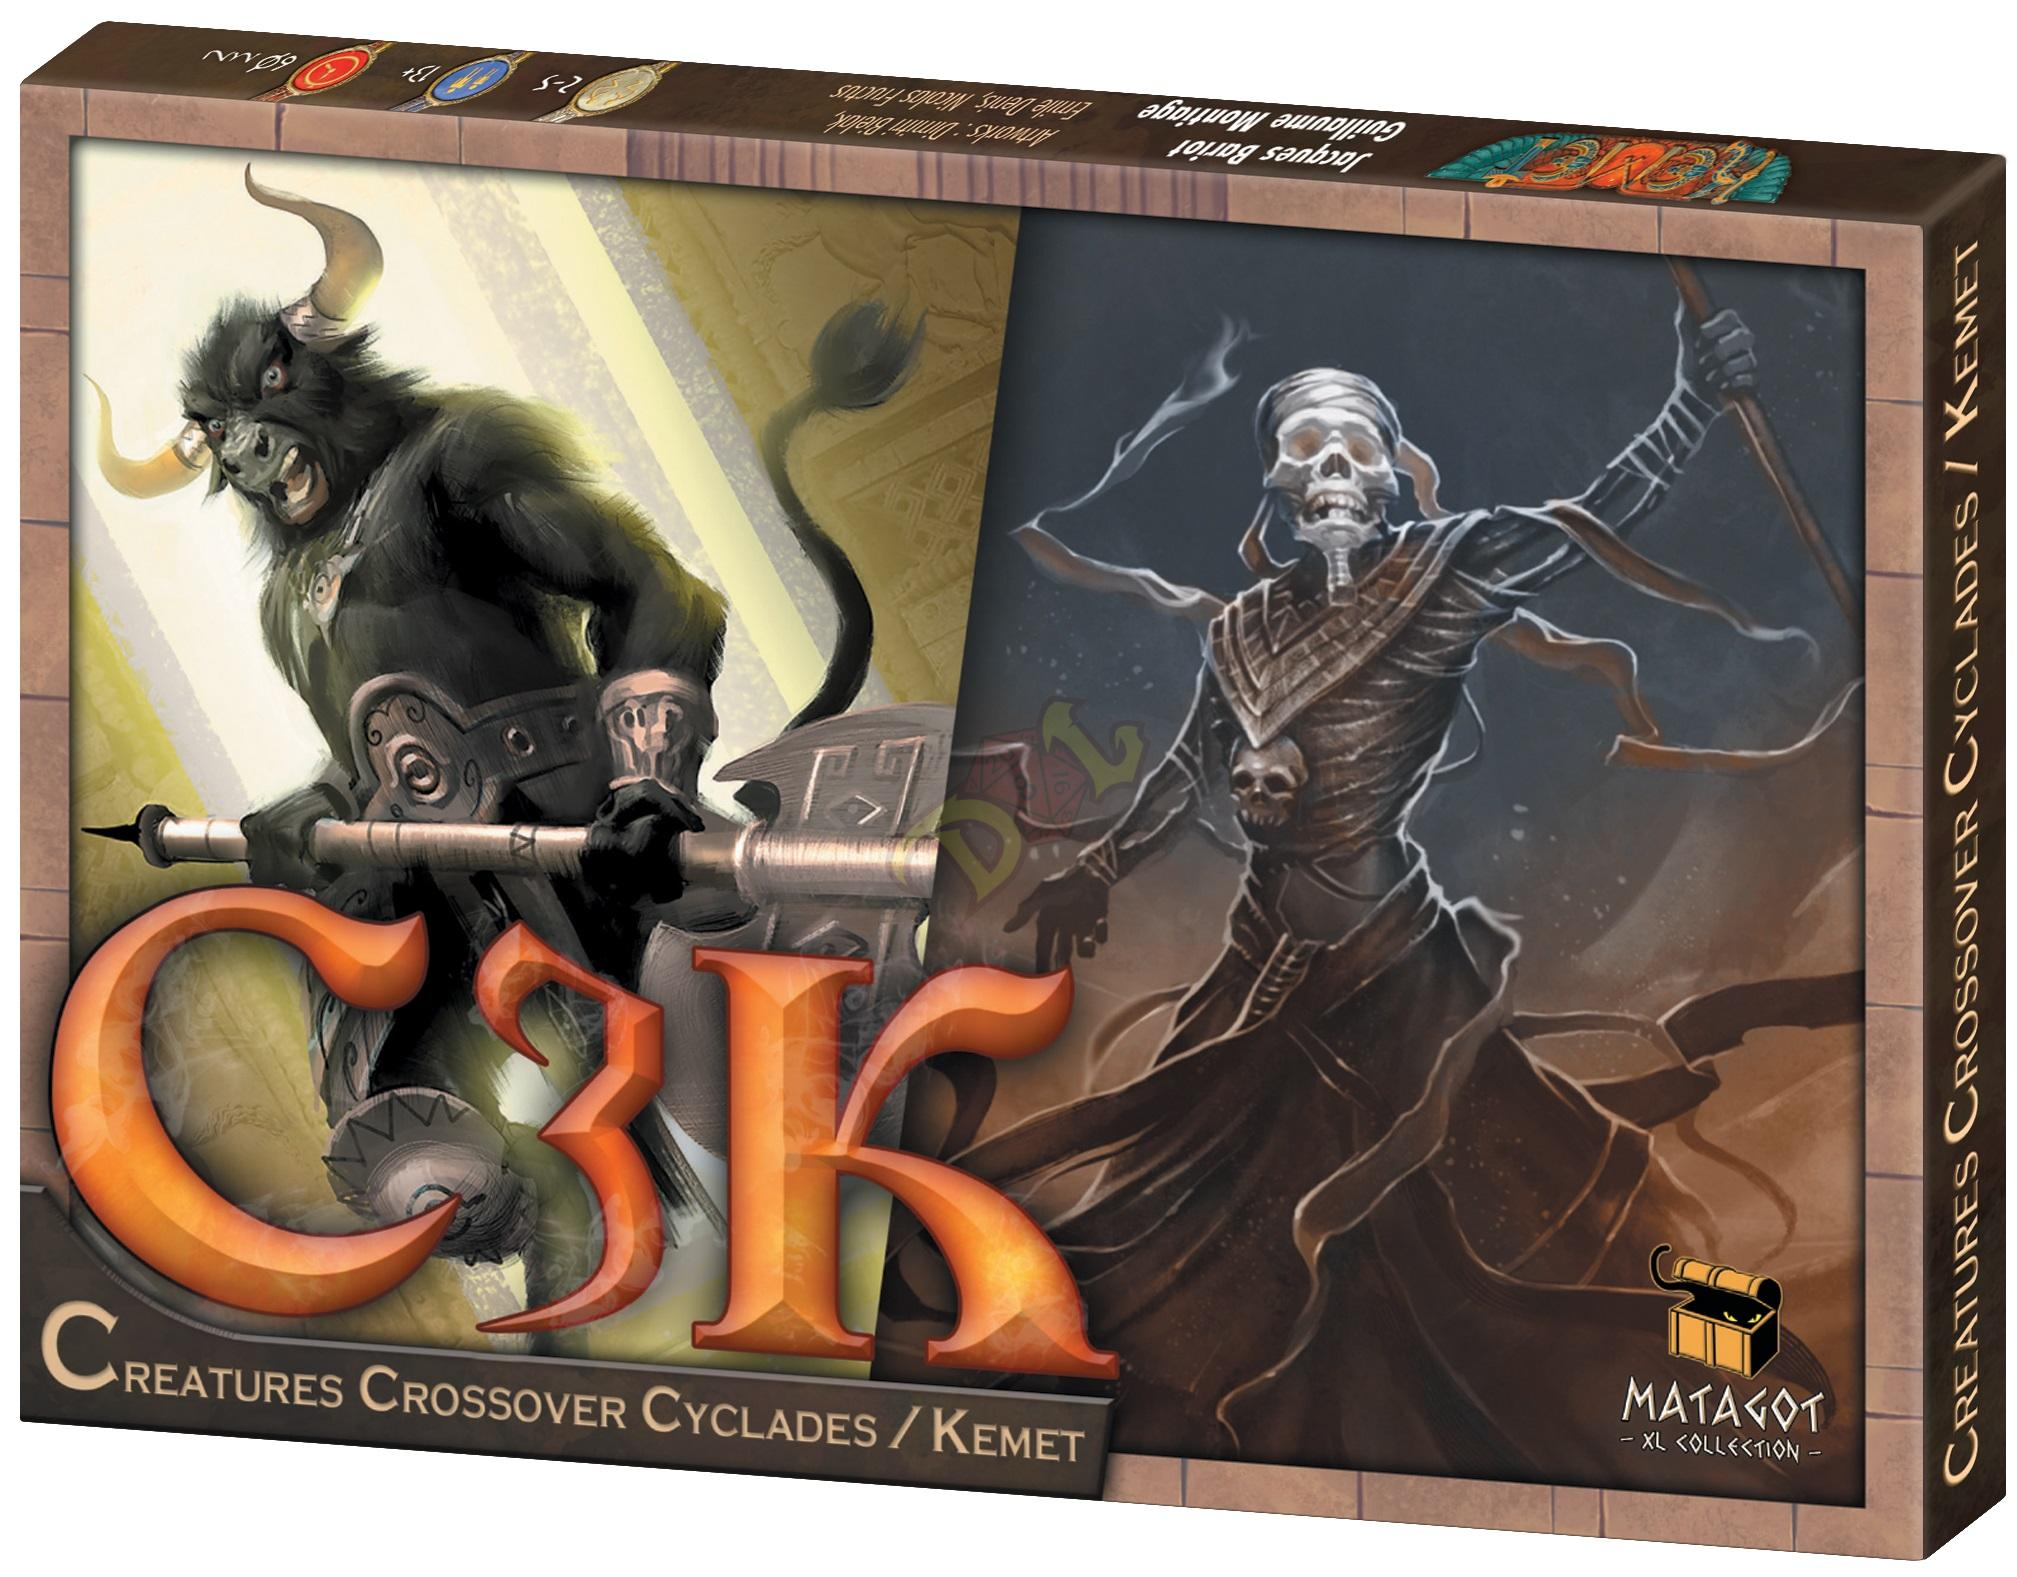 Creatures Crossover Cyclades/Kemet